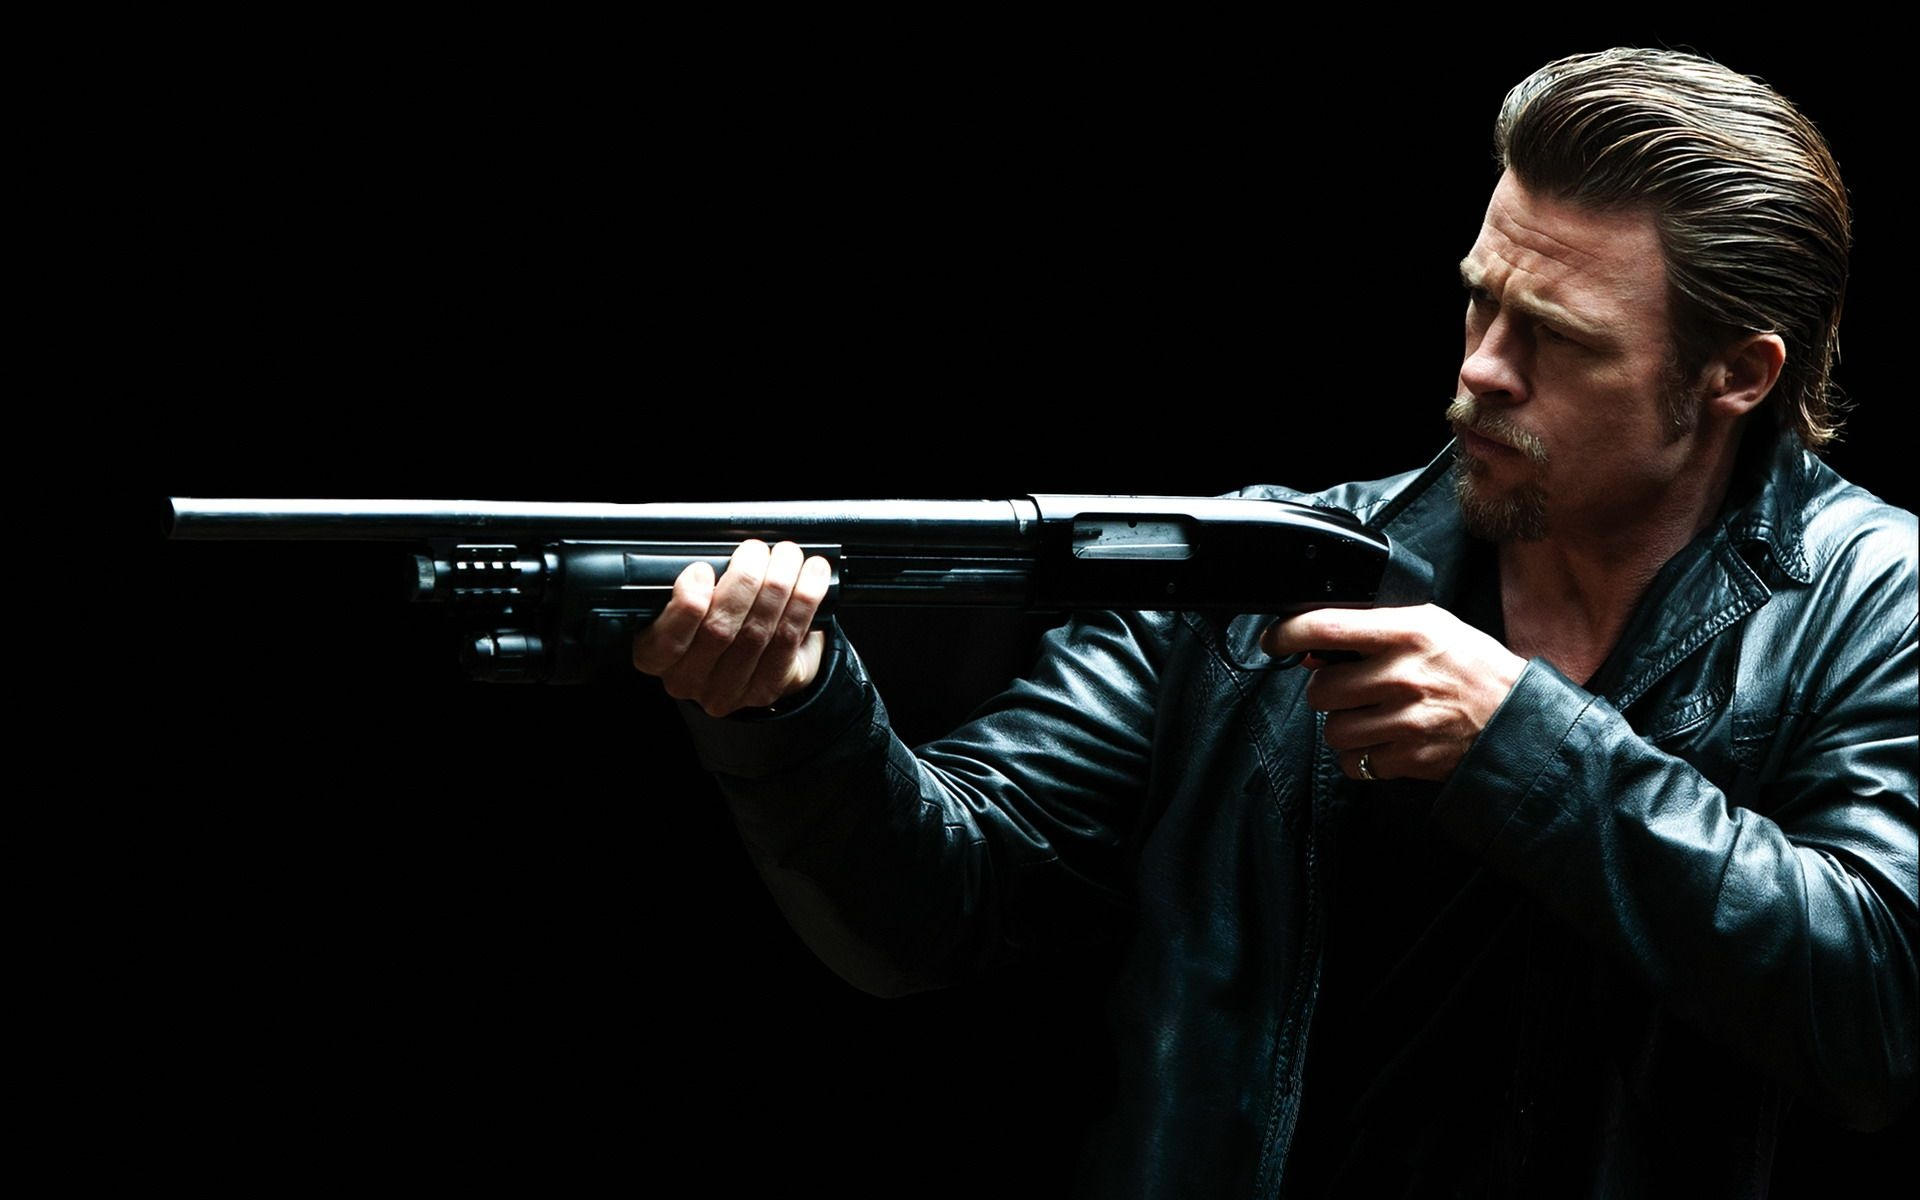 Killing Them Softly wallpaper 2